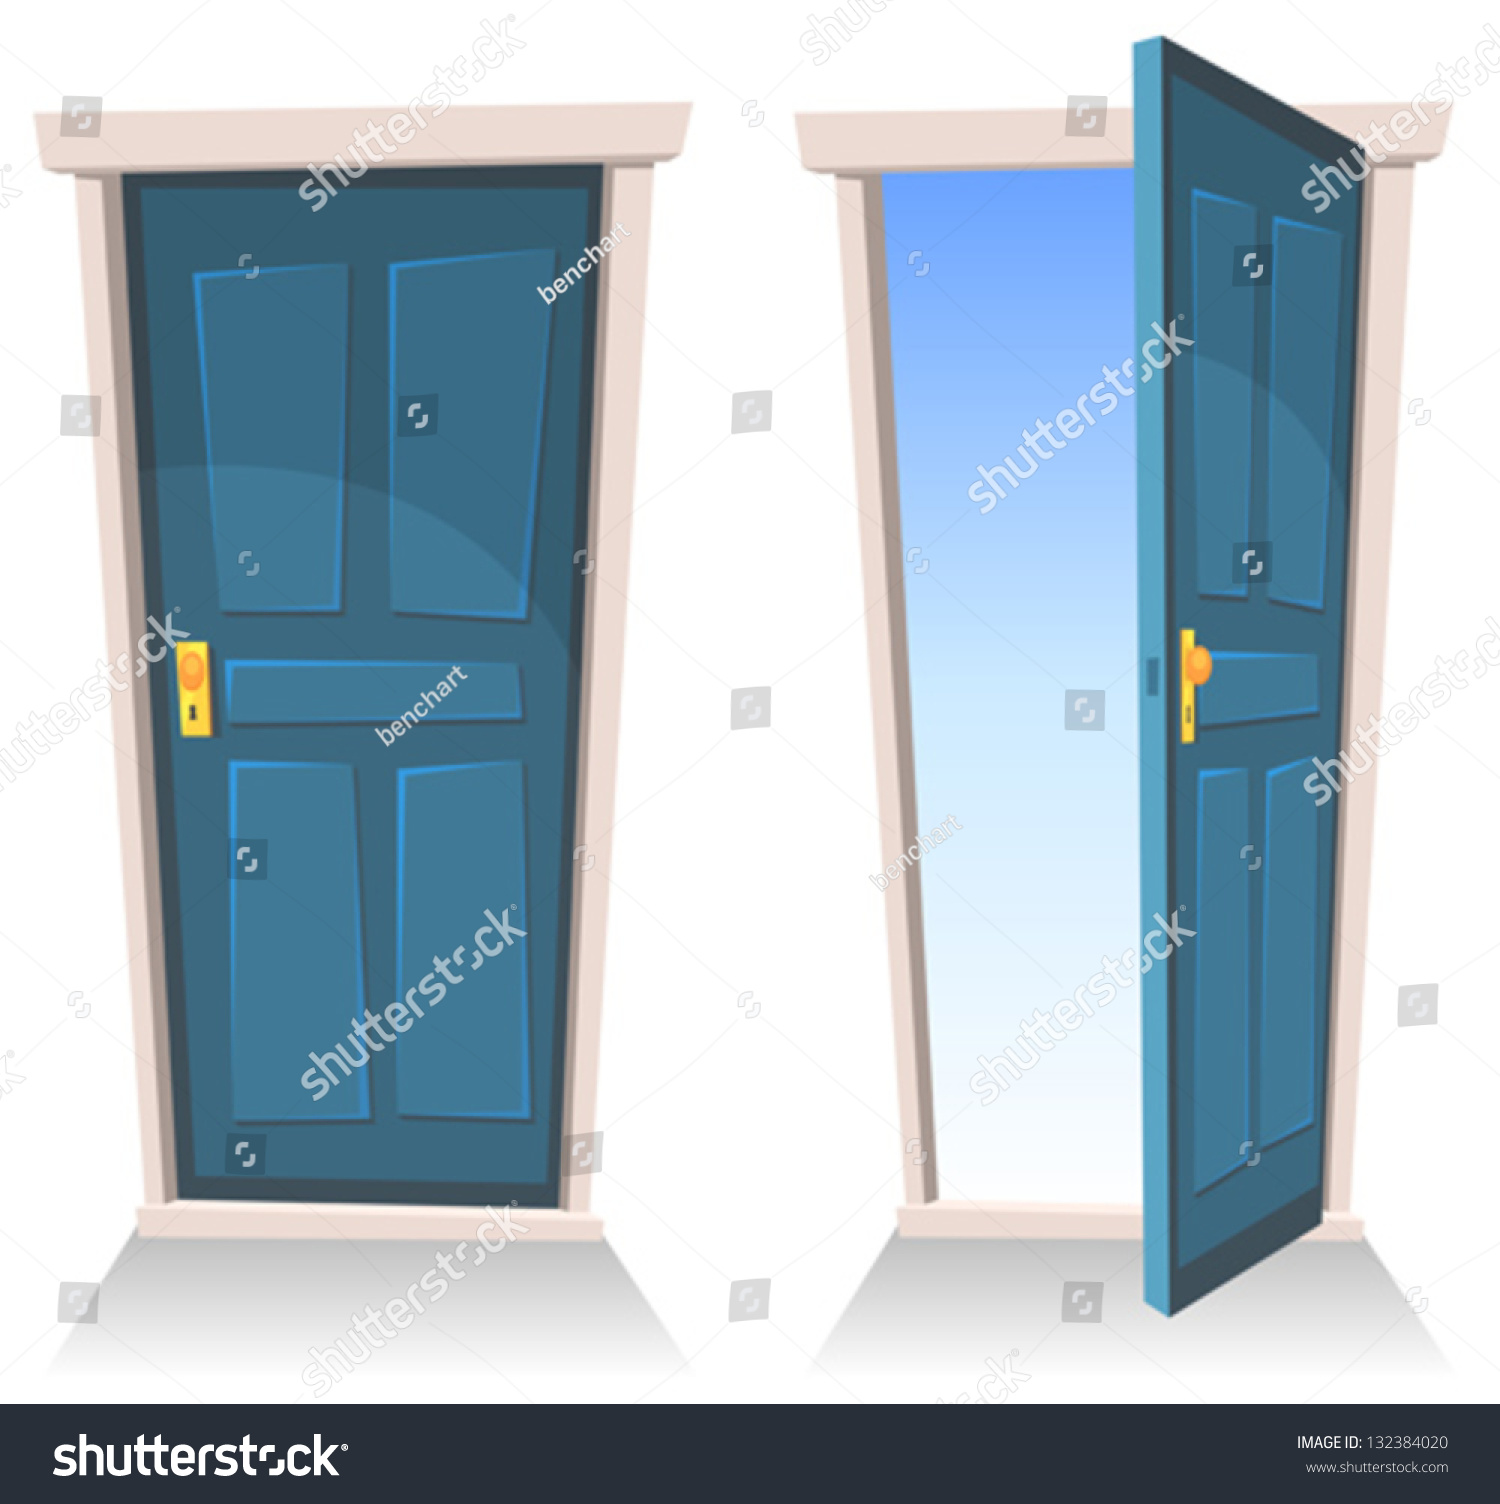 Open door closed door - Doors Closed And Open Illustration Of A Set Of Cartoon Front Doors Opened And